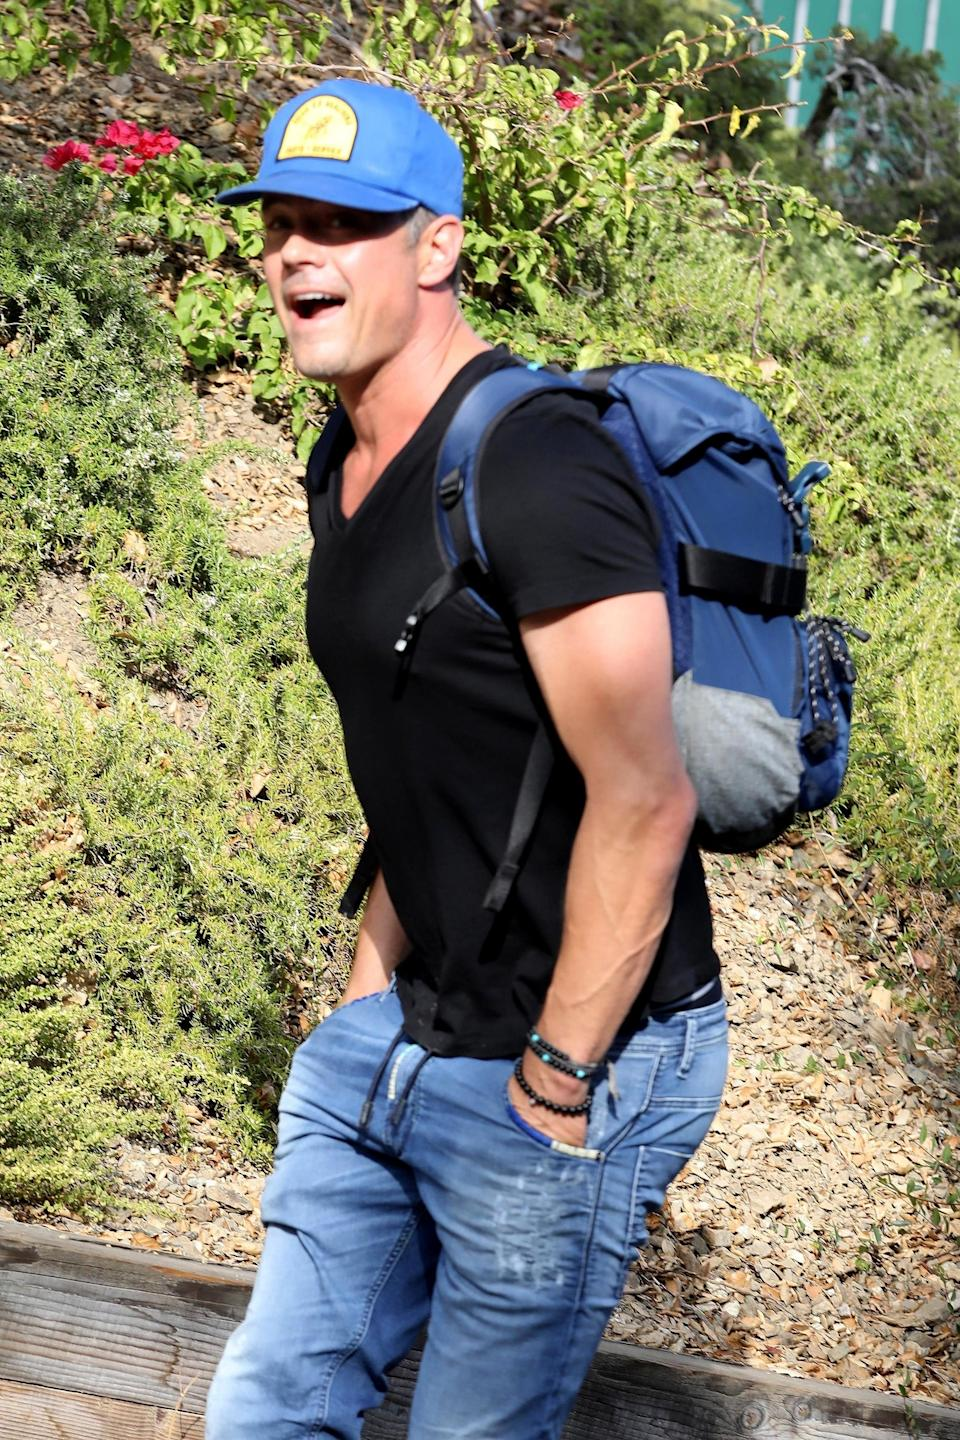 Josh Duhamel goes hiking after the news of his split from Fergie. (Photo: BACKGRID)